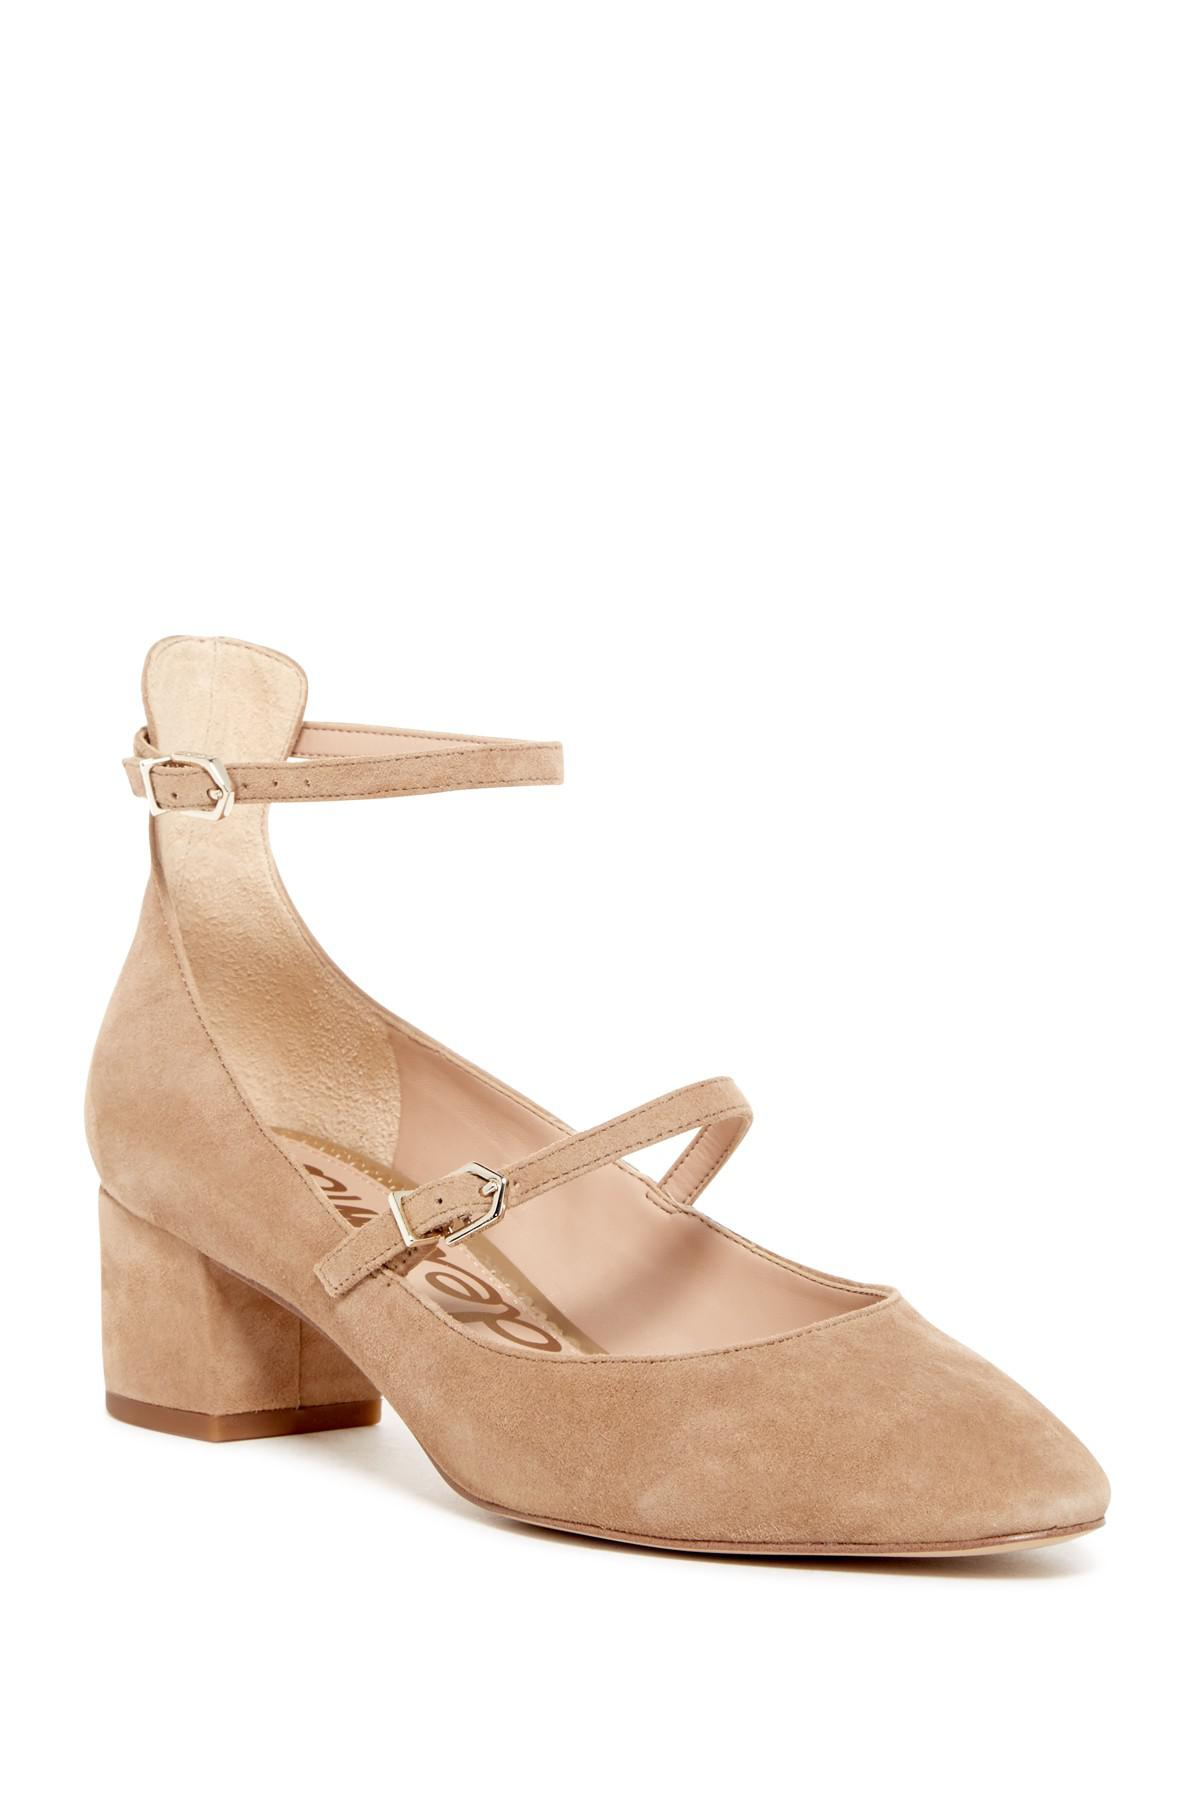 f0fcc5b4a819 Lyst - Sam Edelman Lulie Suede Ankle Strap Pump in Natural